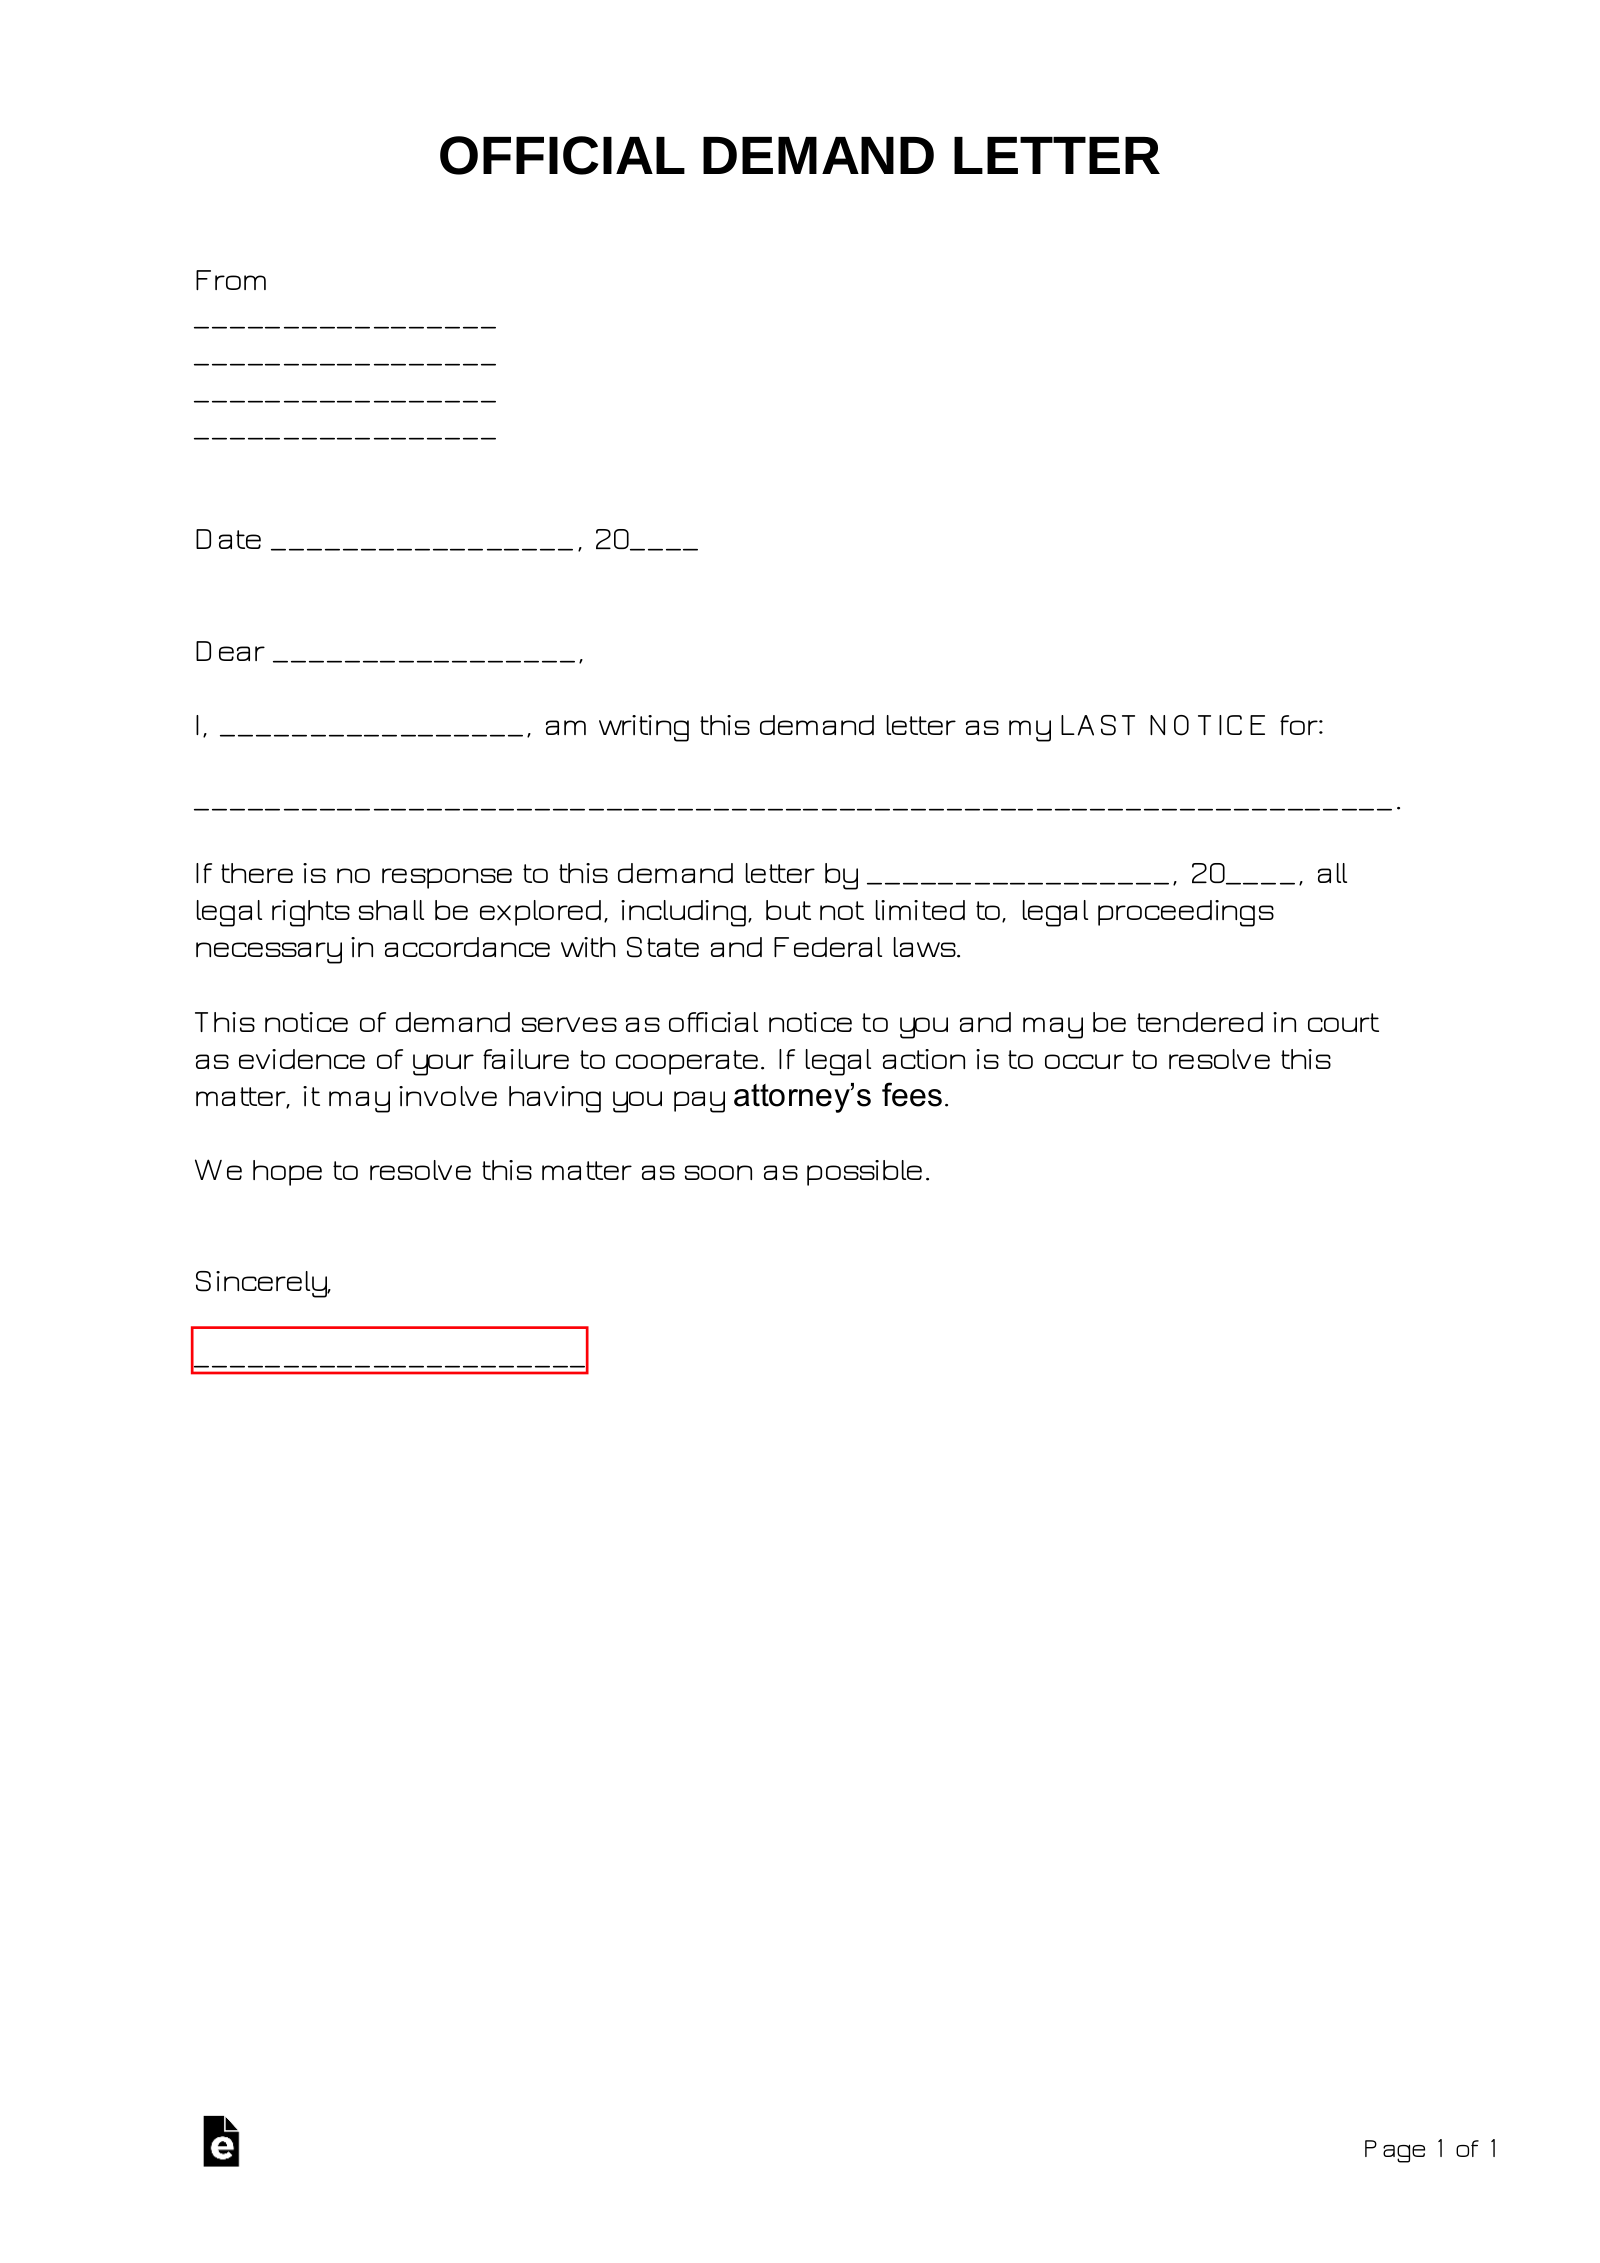 Final Demand Letter Sample from eforms.com